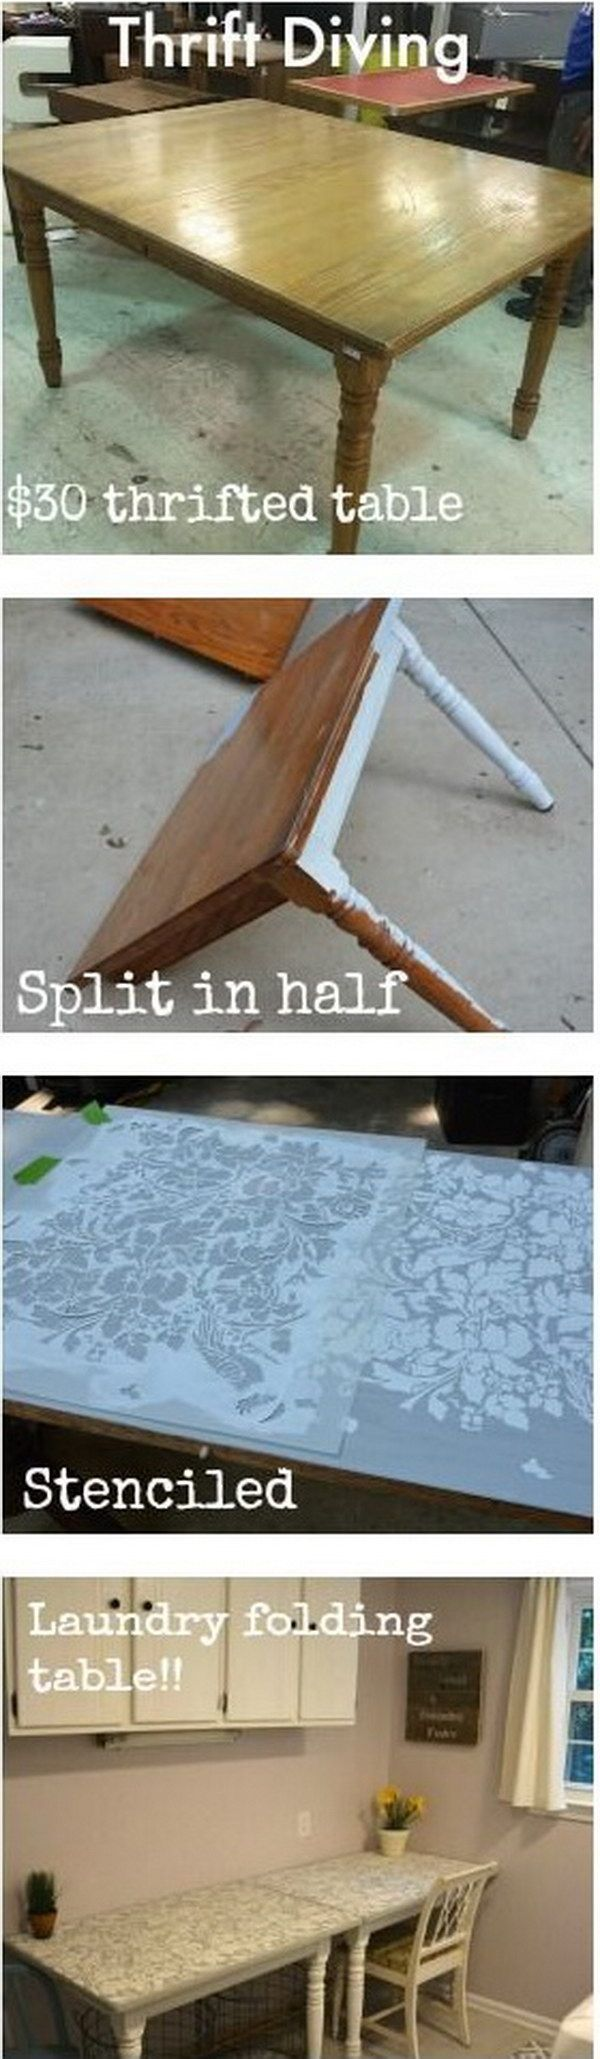 40 Awesome Makeovers: Clever Ways With Tutorials to Repurpose Old Furniture